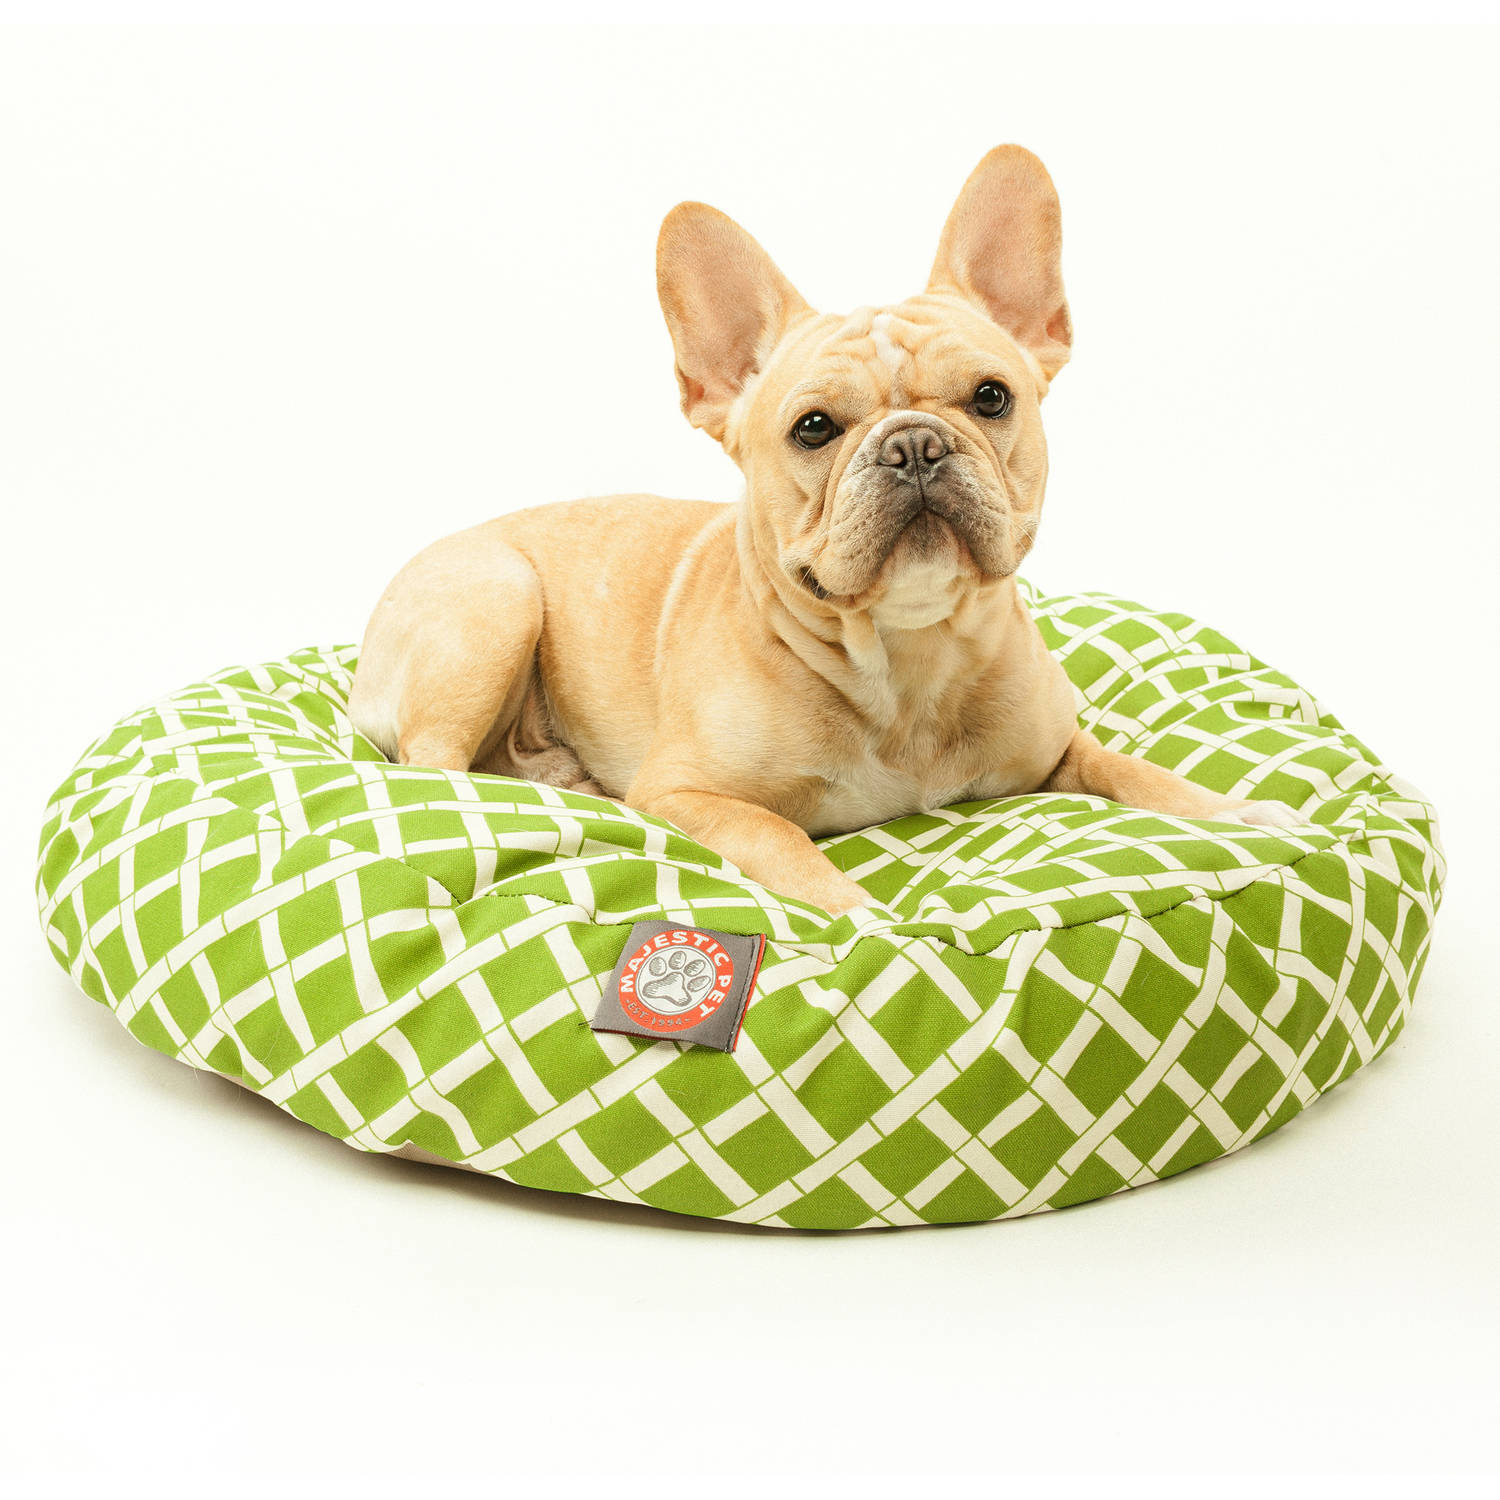 Majestic Pet Products Bamboo Round Outdoor Indoor Pet Bed Removable Cover